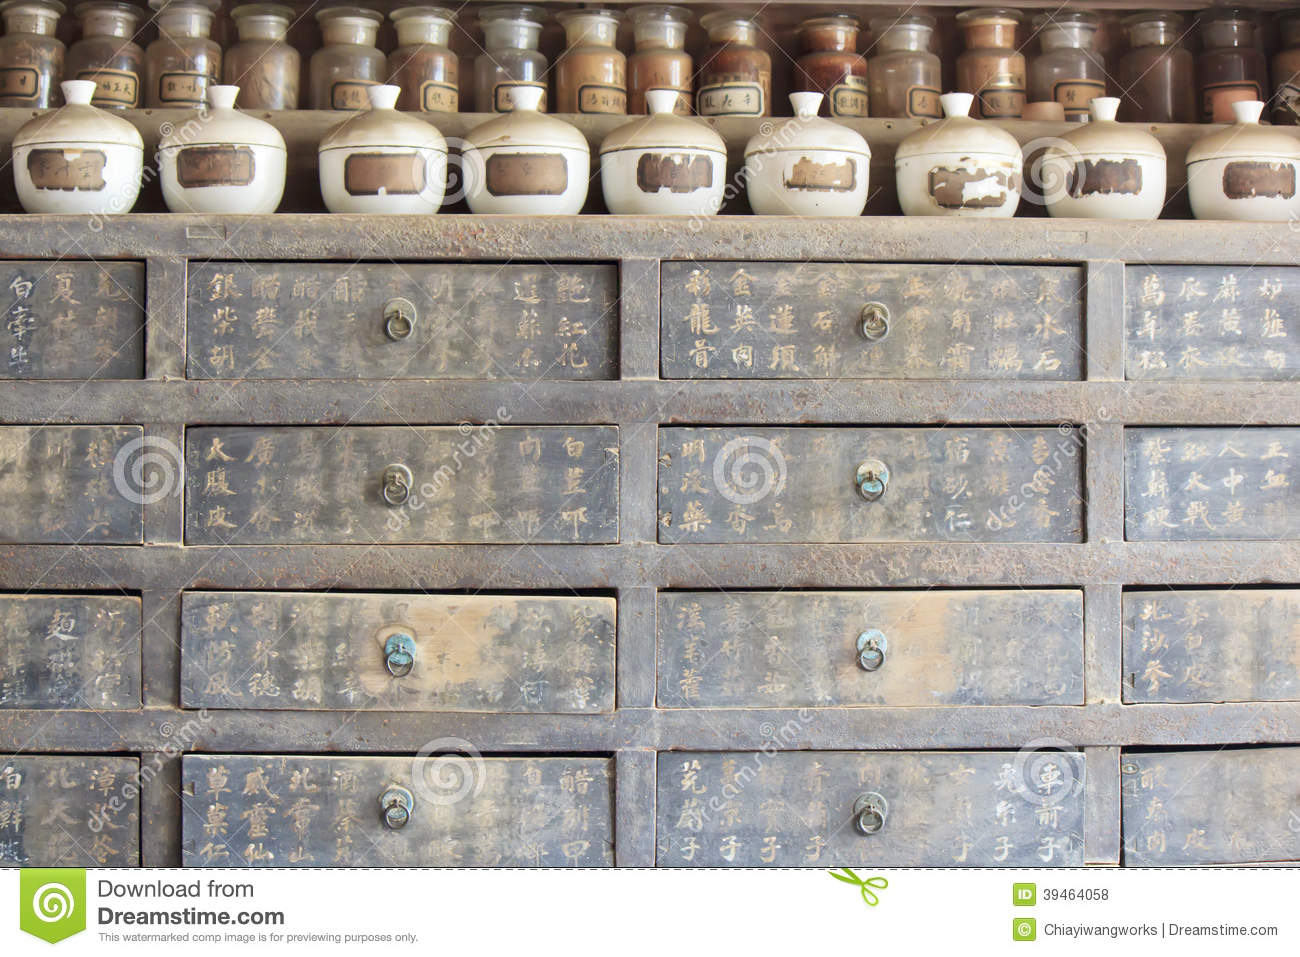 cabinets decorating vintage blog image rustic stores cabinet home owl large clipgoo antique catalogs collection ja ideas size of decor medicine websites devd furniture decorators fortytwo pinterest cheap coupon christmas outlet appliances